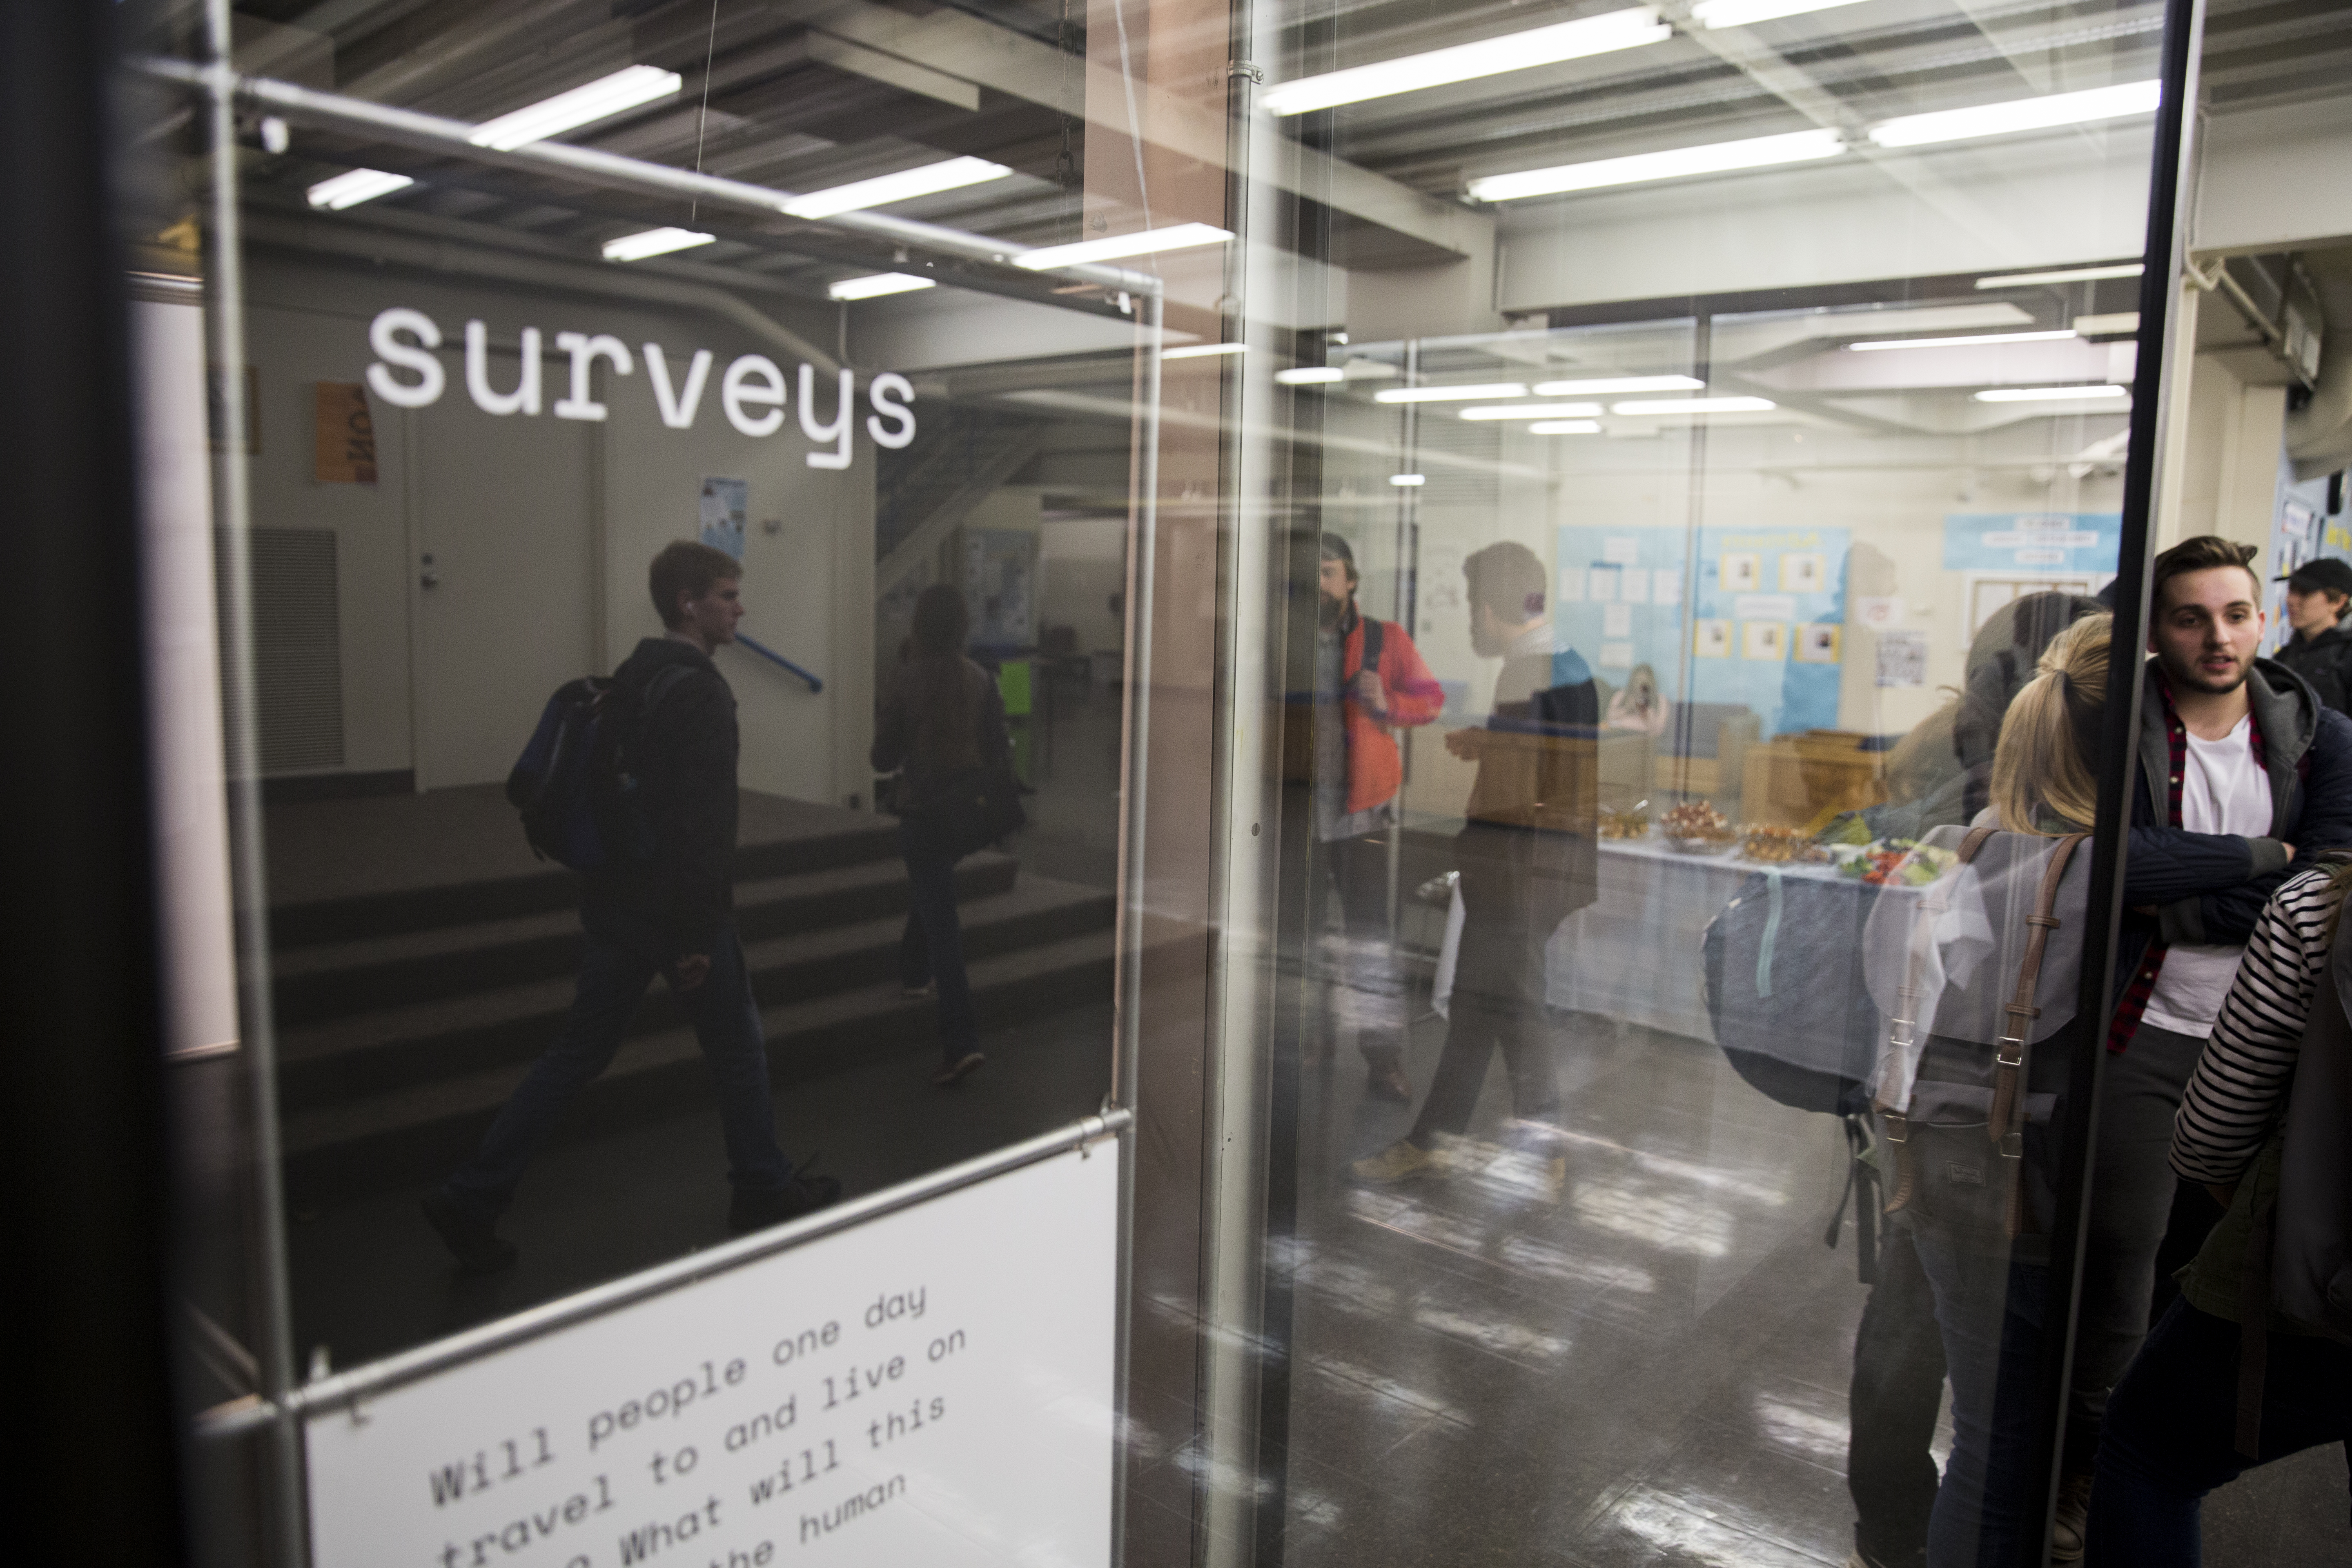 Surveys is a work of Kent State University Visual Communication Design MFA students, inspired by NASA's Orion Spacecraft, built to transport humans to interplanetary destinations such as asteroids, the moon and eventually Mars.